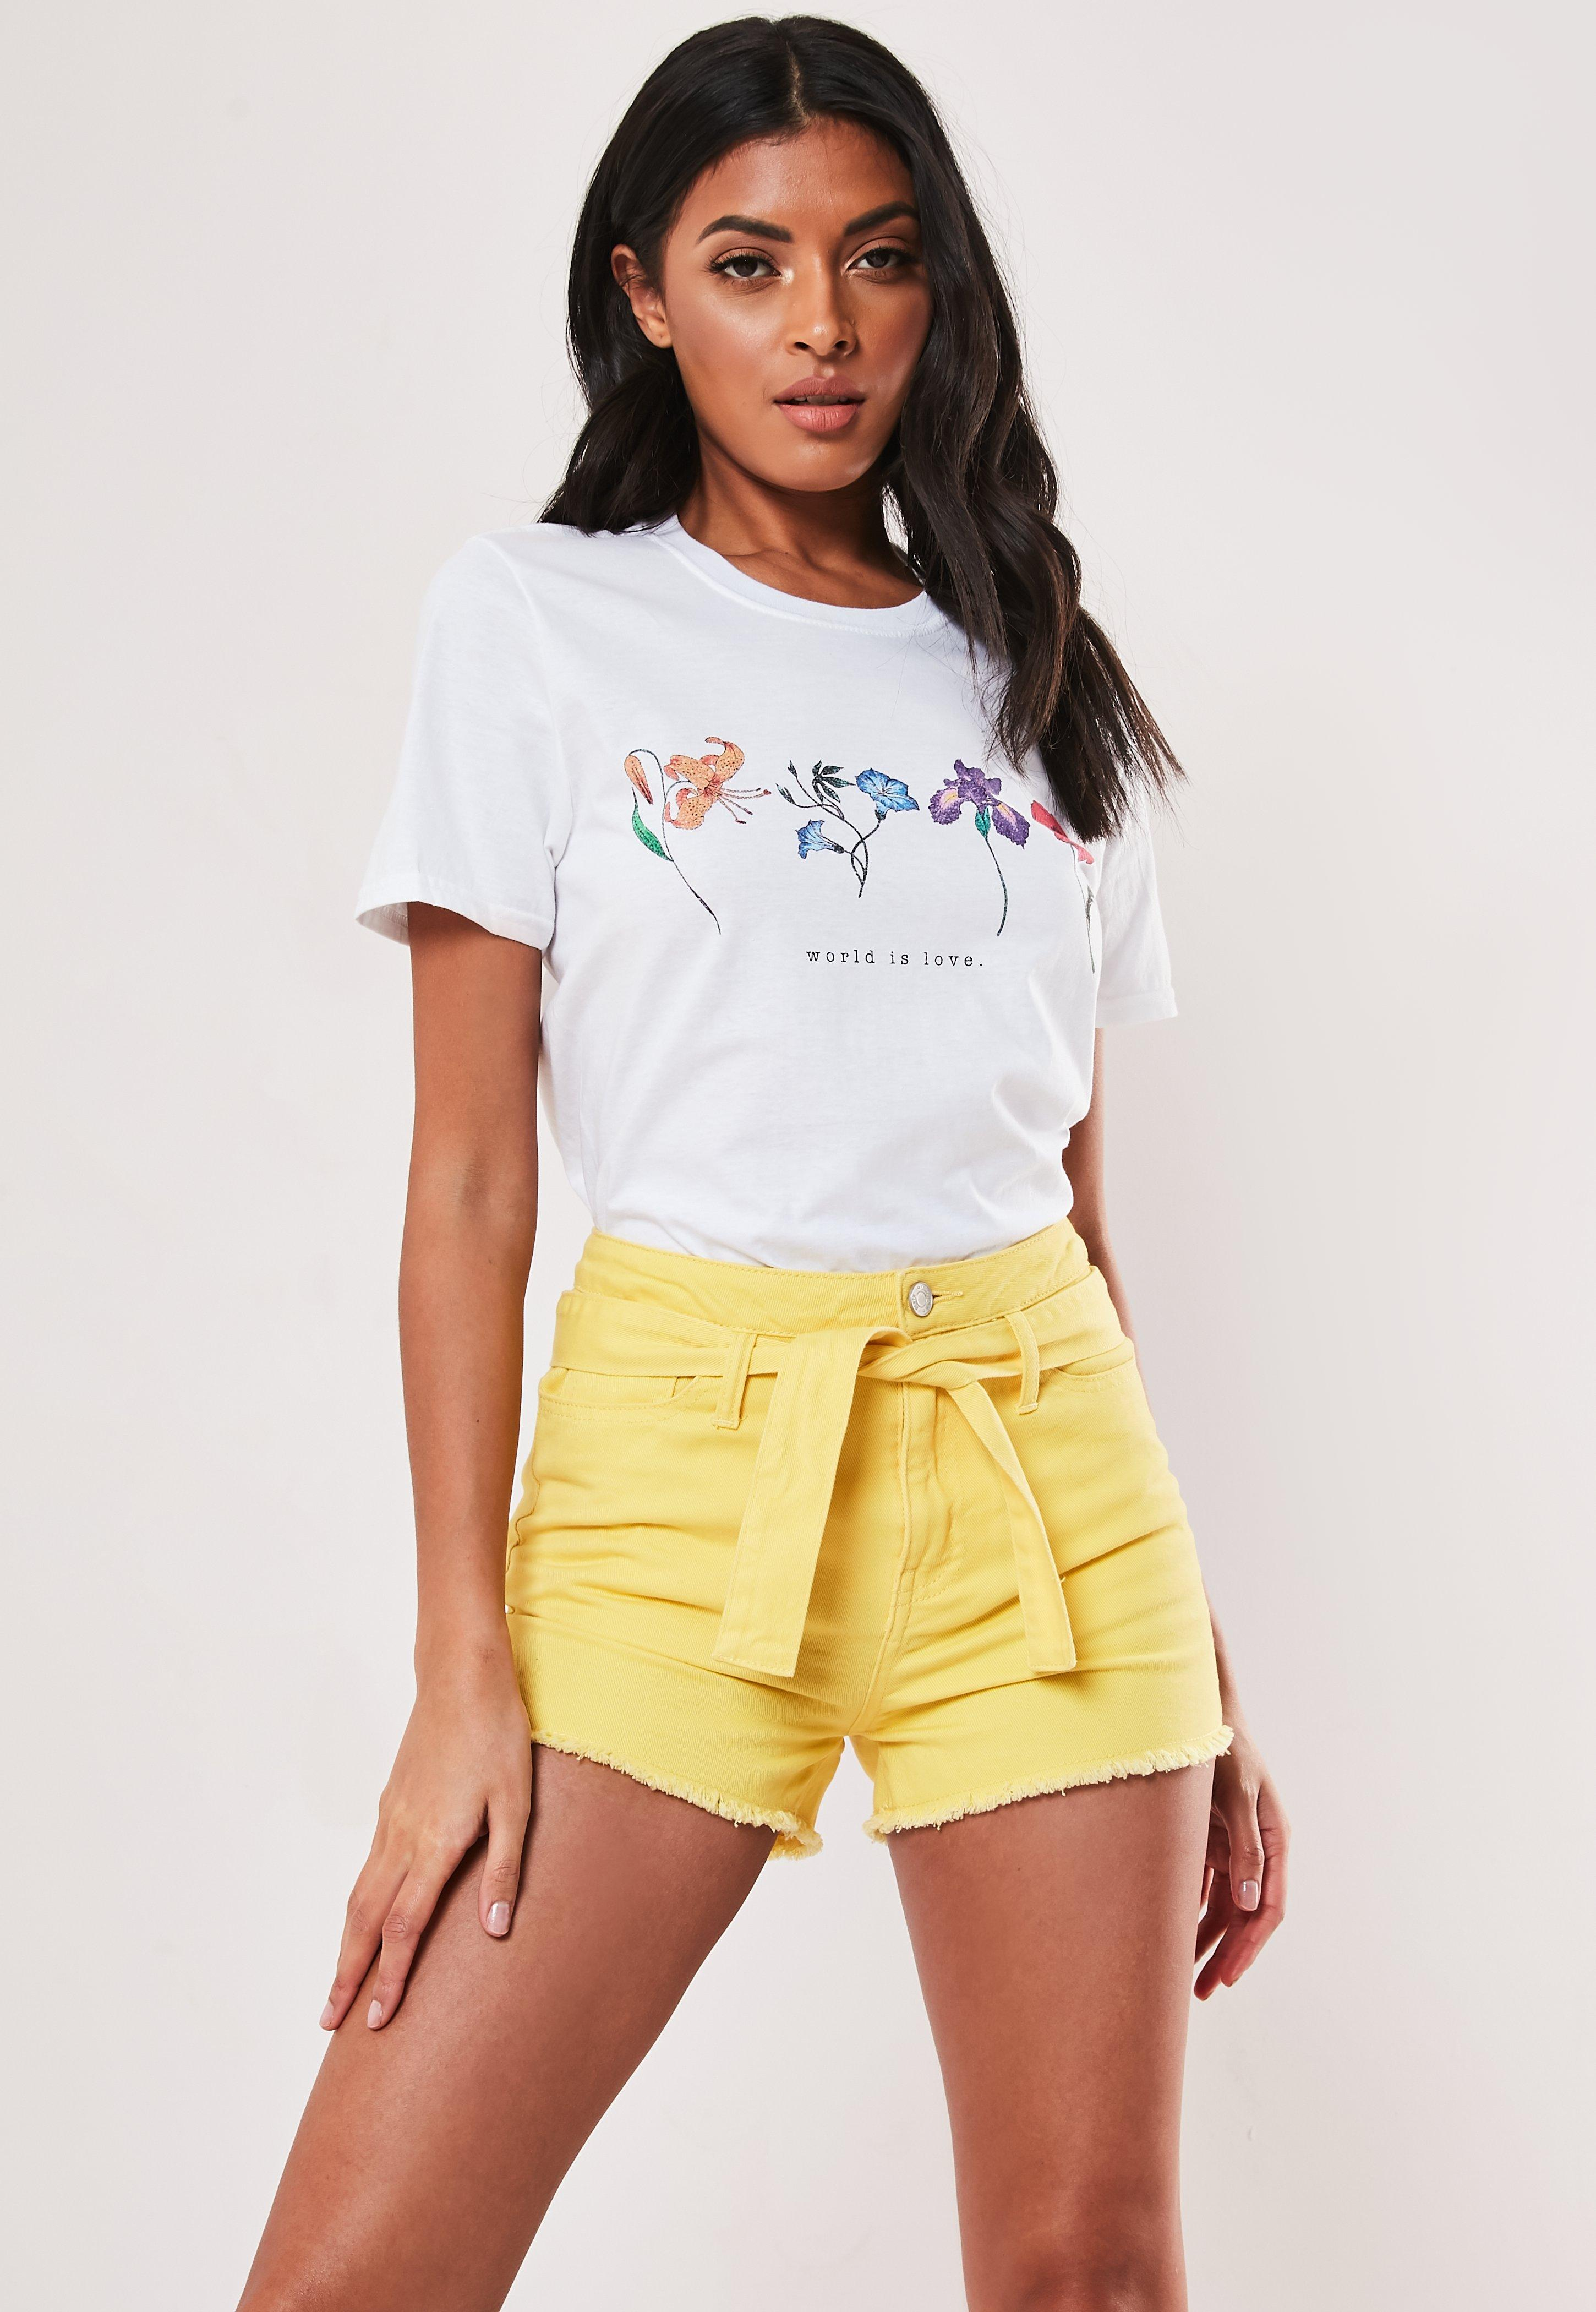 61d94e06677 Women's T-Shirts - Graphic & Rock Tees Online   Missguided